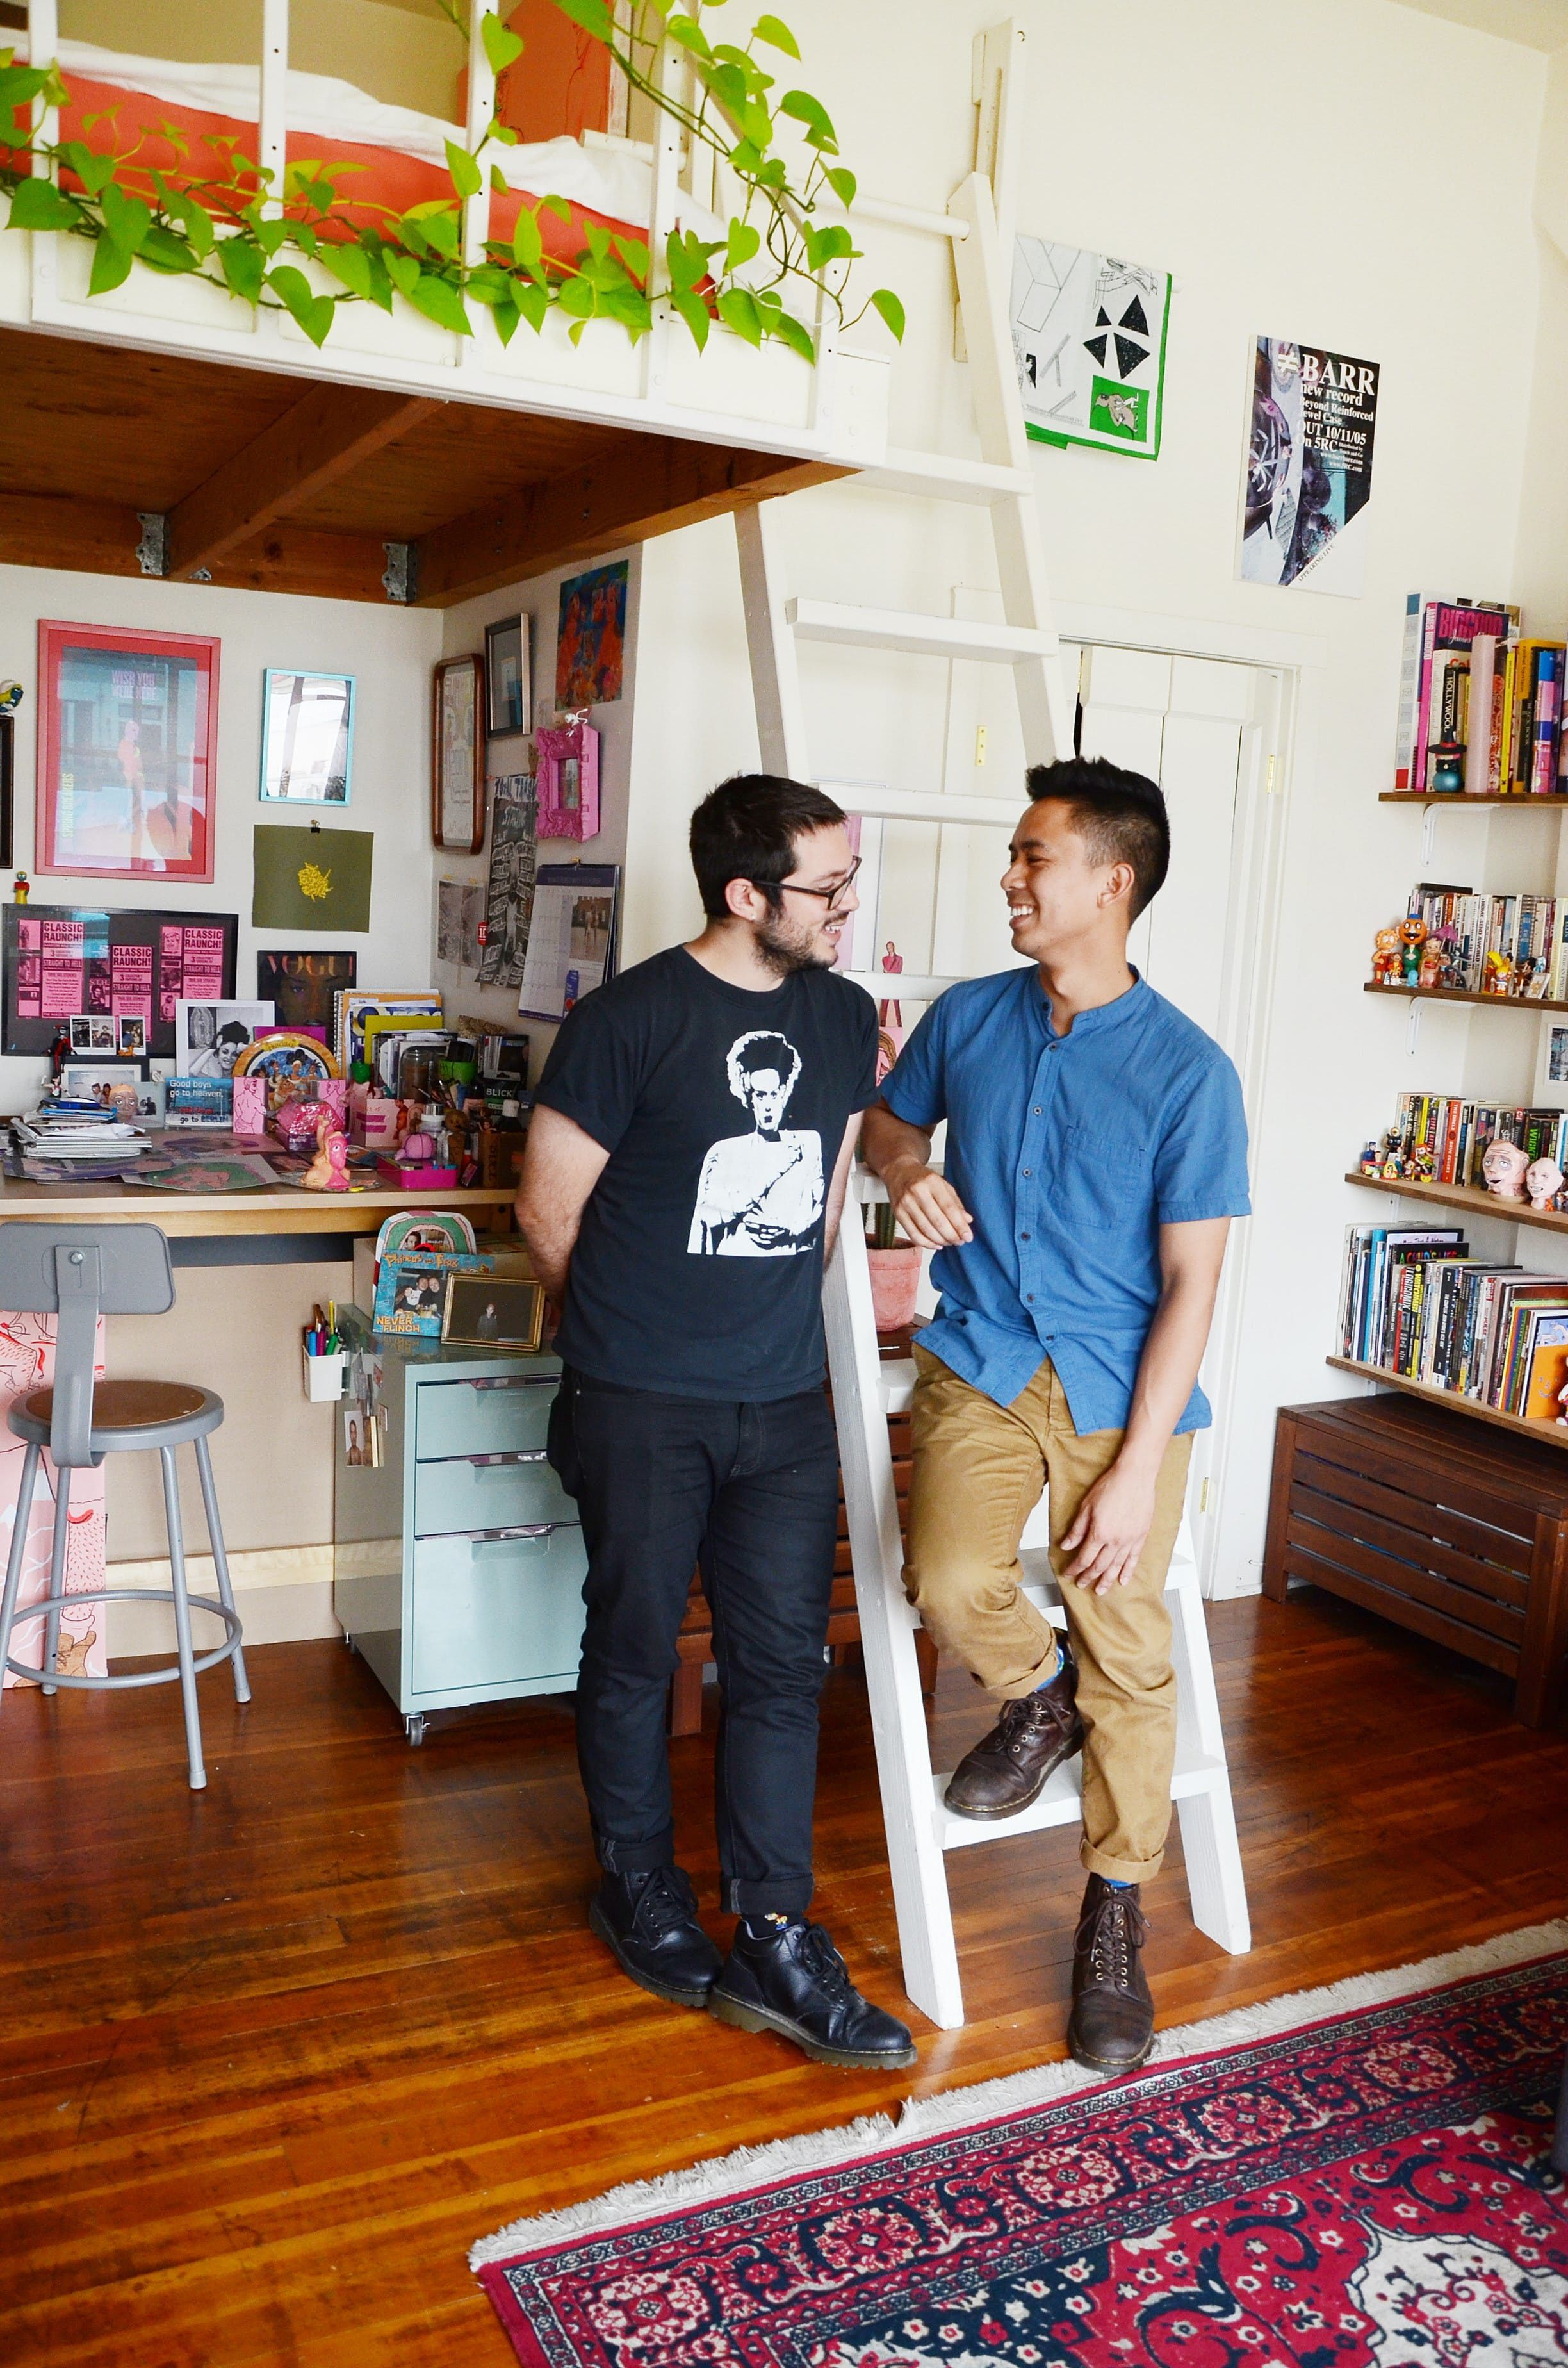 Sharing A Super Small Space How Two People Live Well In Just 300 Square Feet Square Feet House Tours Cool Rooms